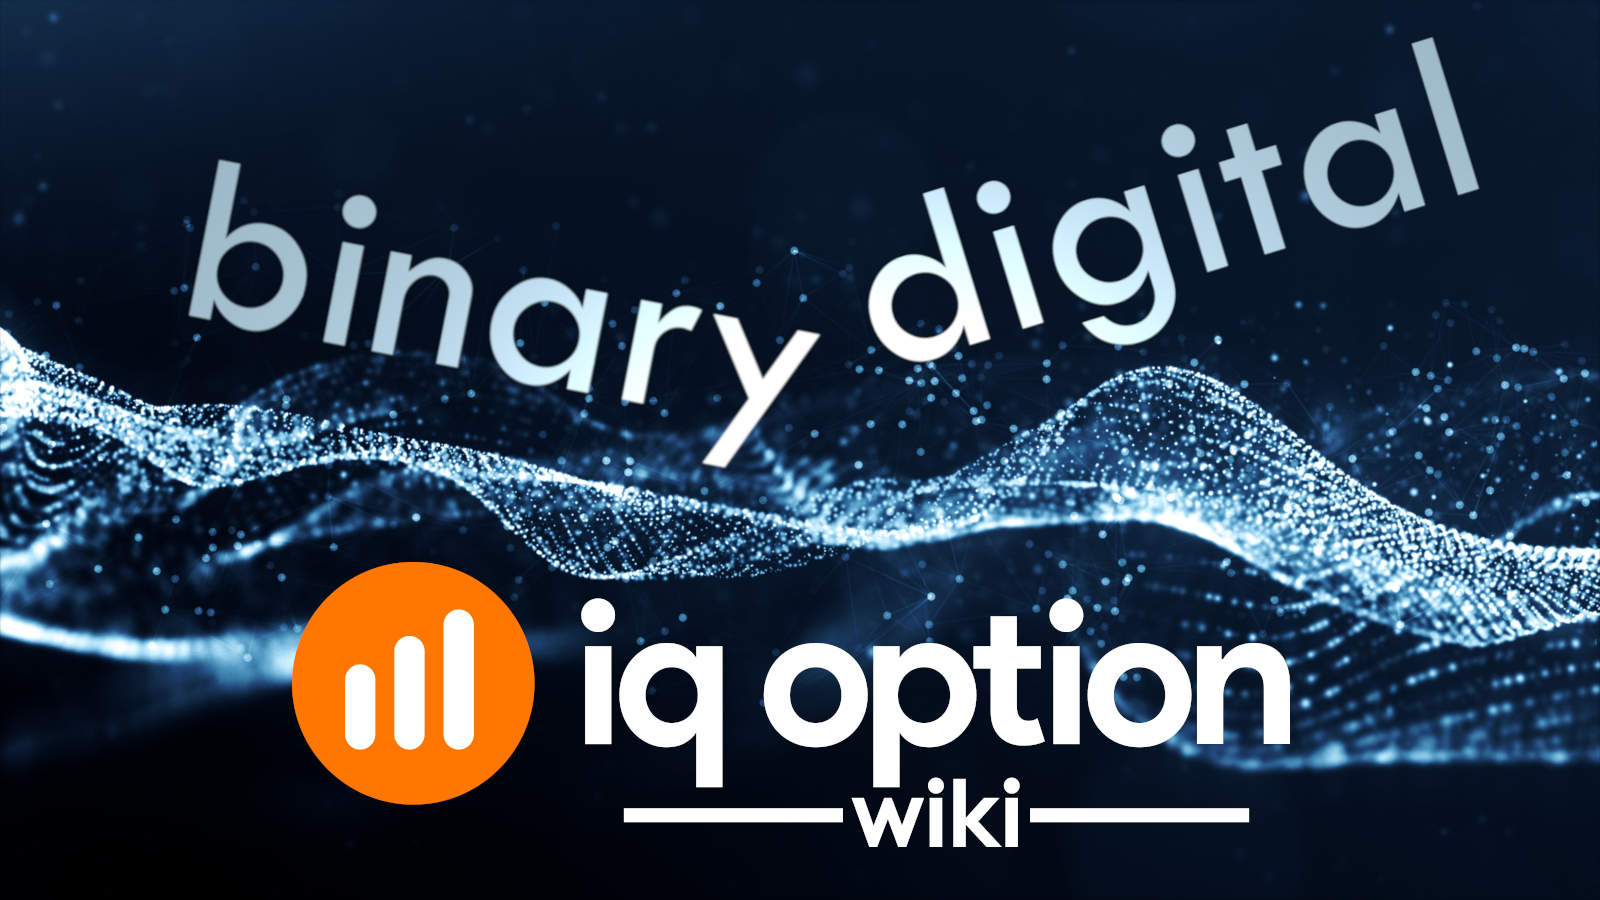 Digital options vs binary options